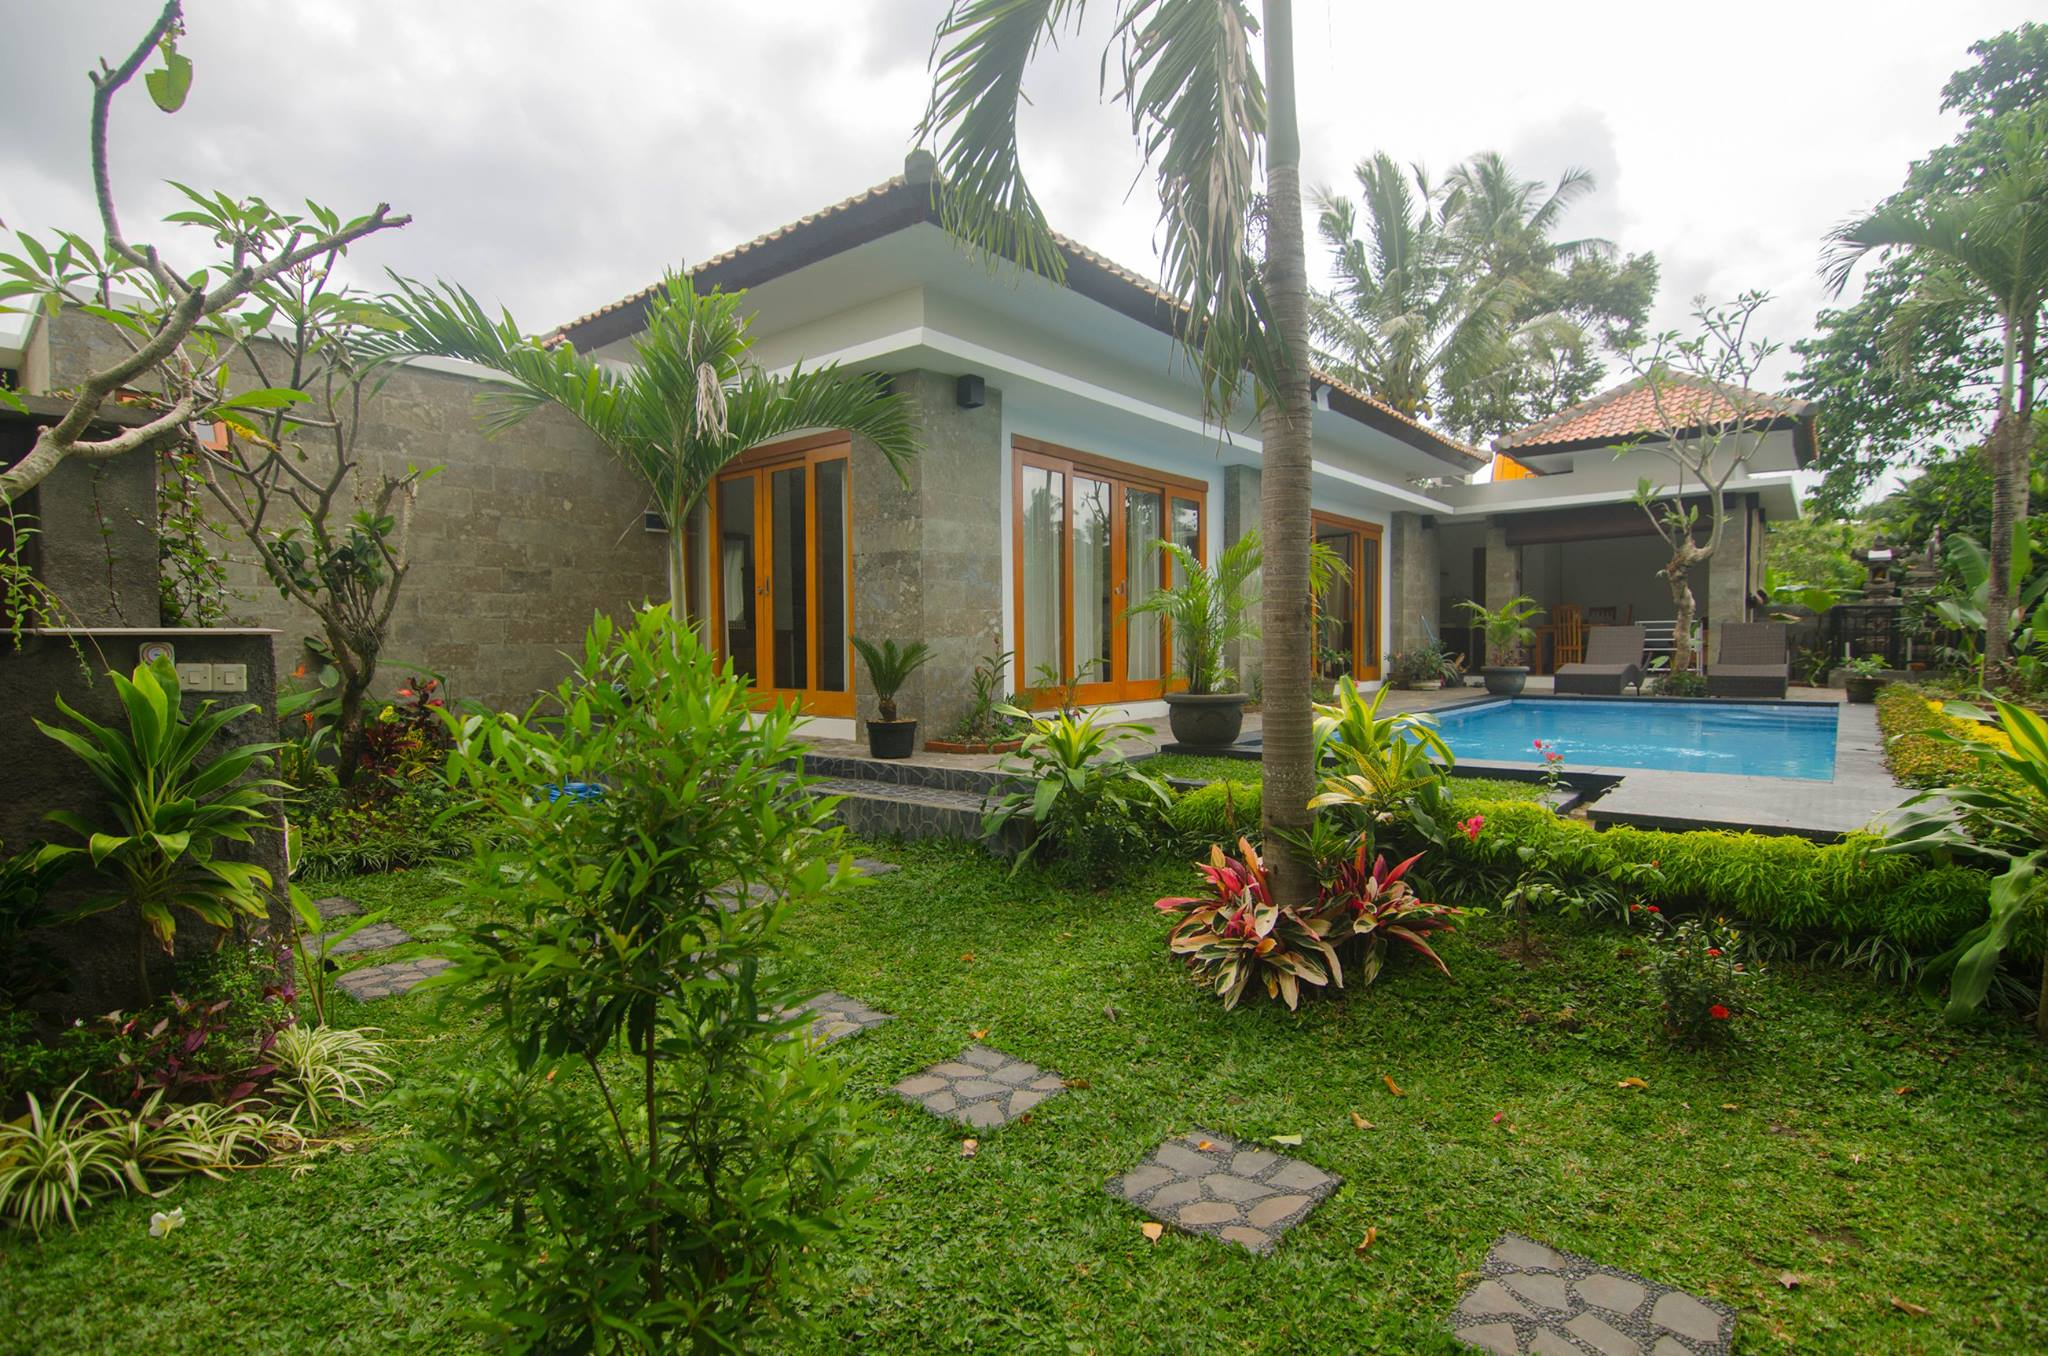 Redeem Venture Miles for Airbnb stays like The Loyik Villa in Ubud, Bali, and earn Delta miles via the Airbnb partnership